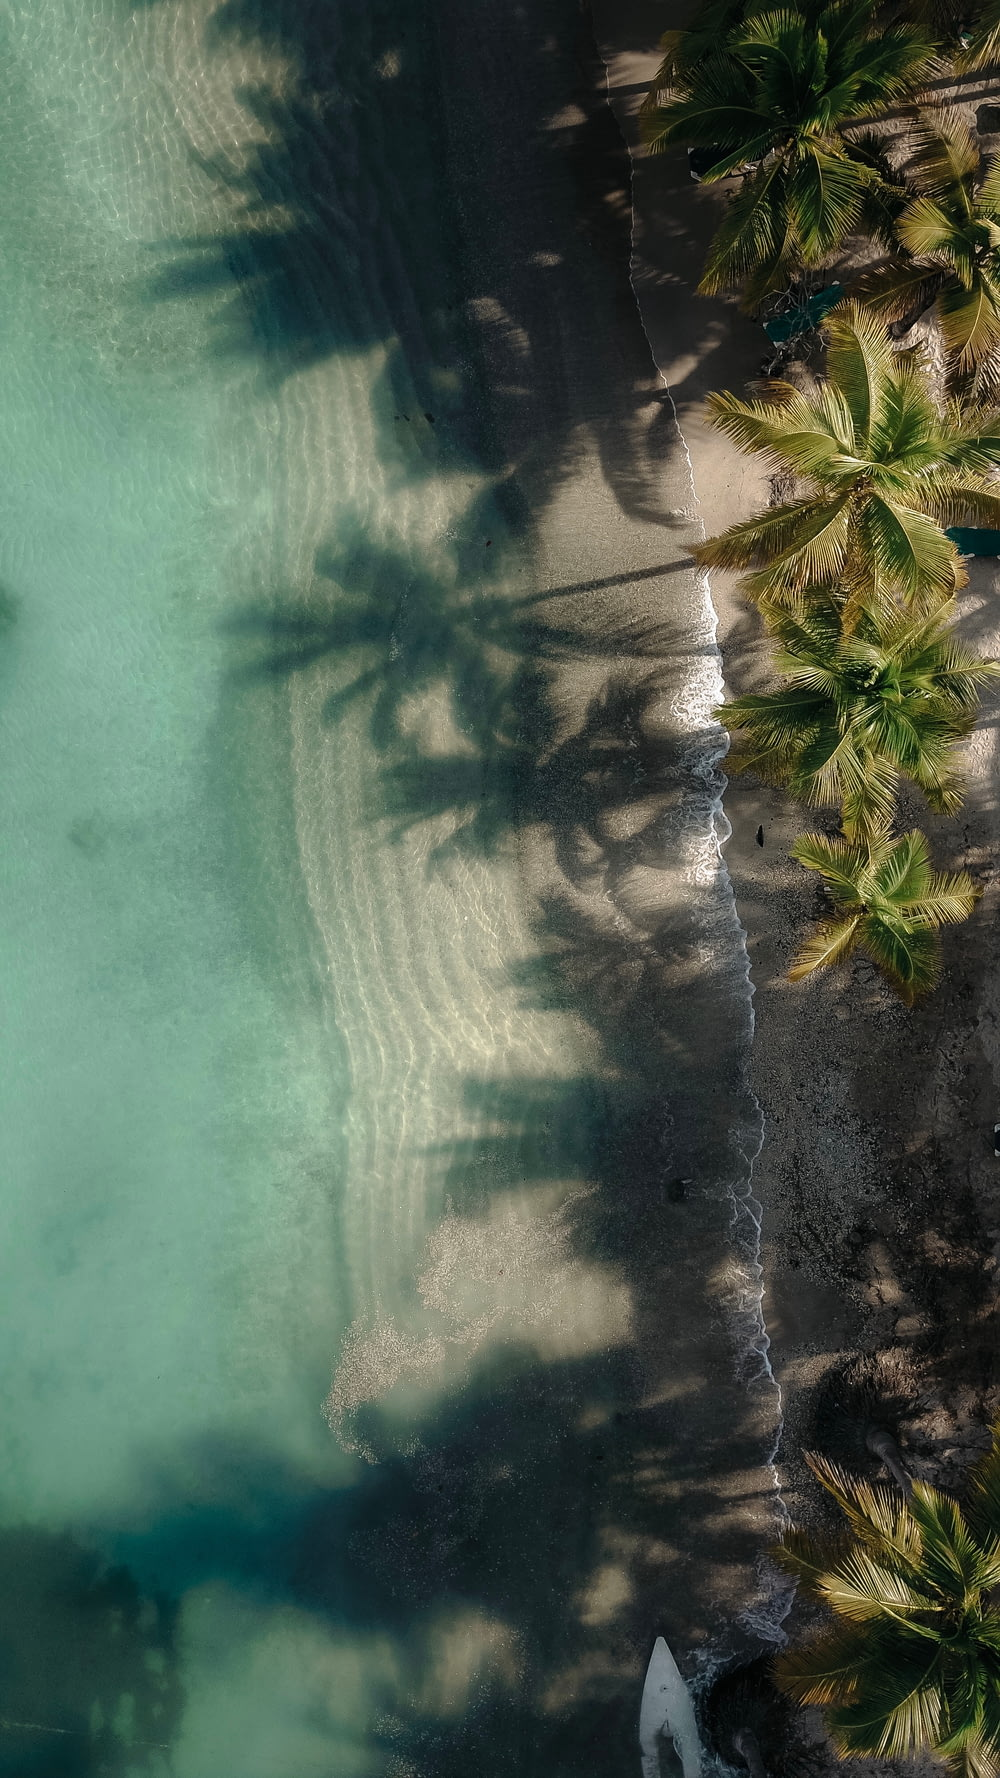 aerial photography of green coconut palm trees near body of water